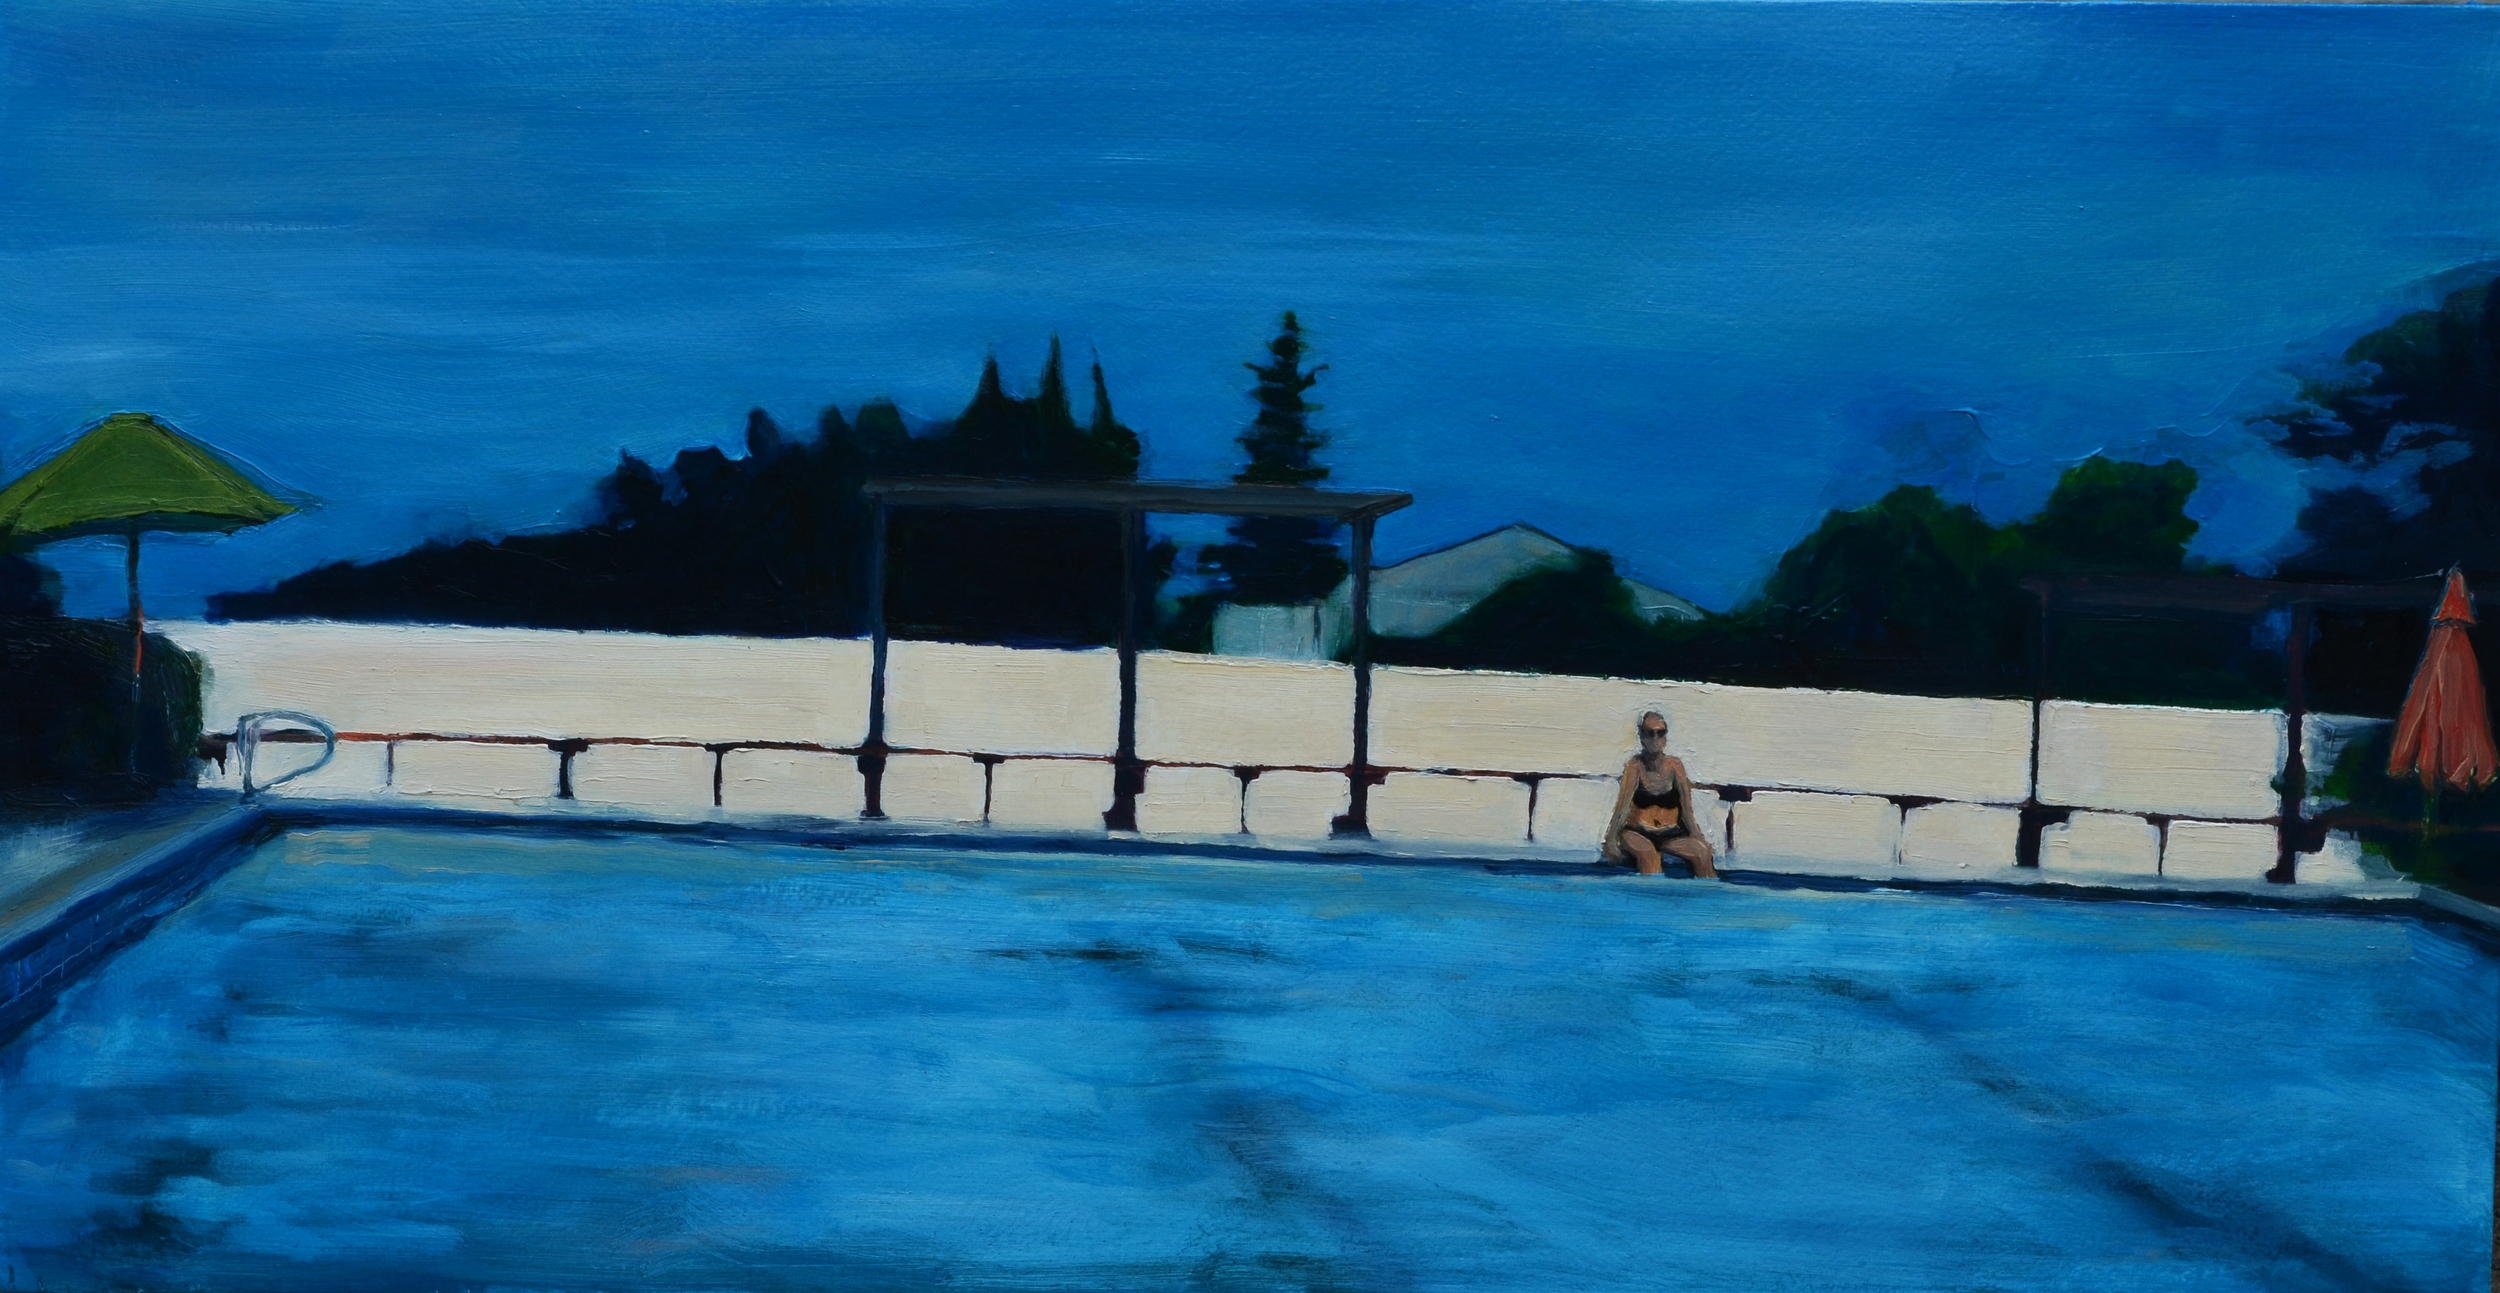 Pool . 2014. Oil on Panel. 15.75 x 30 inches. sold.